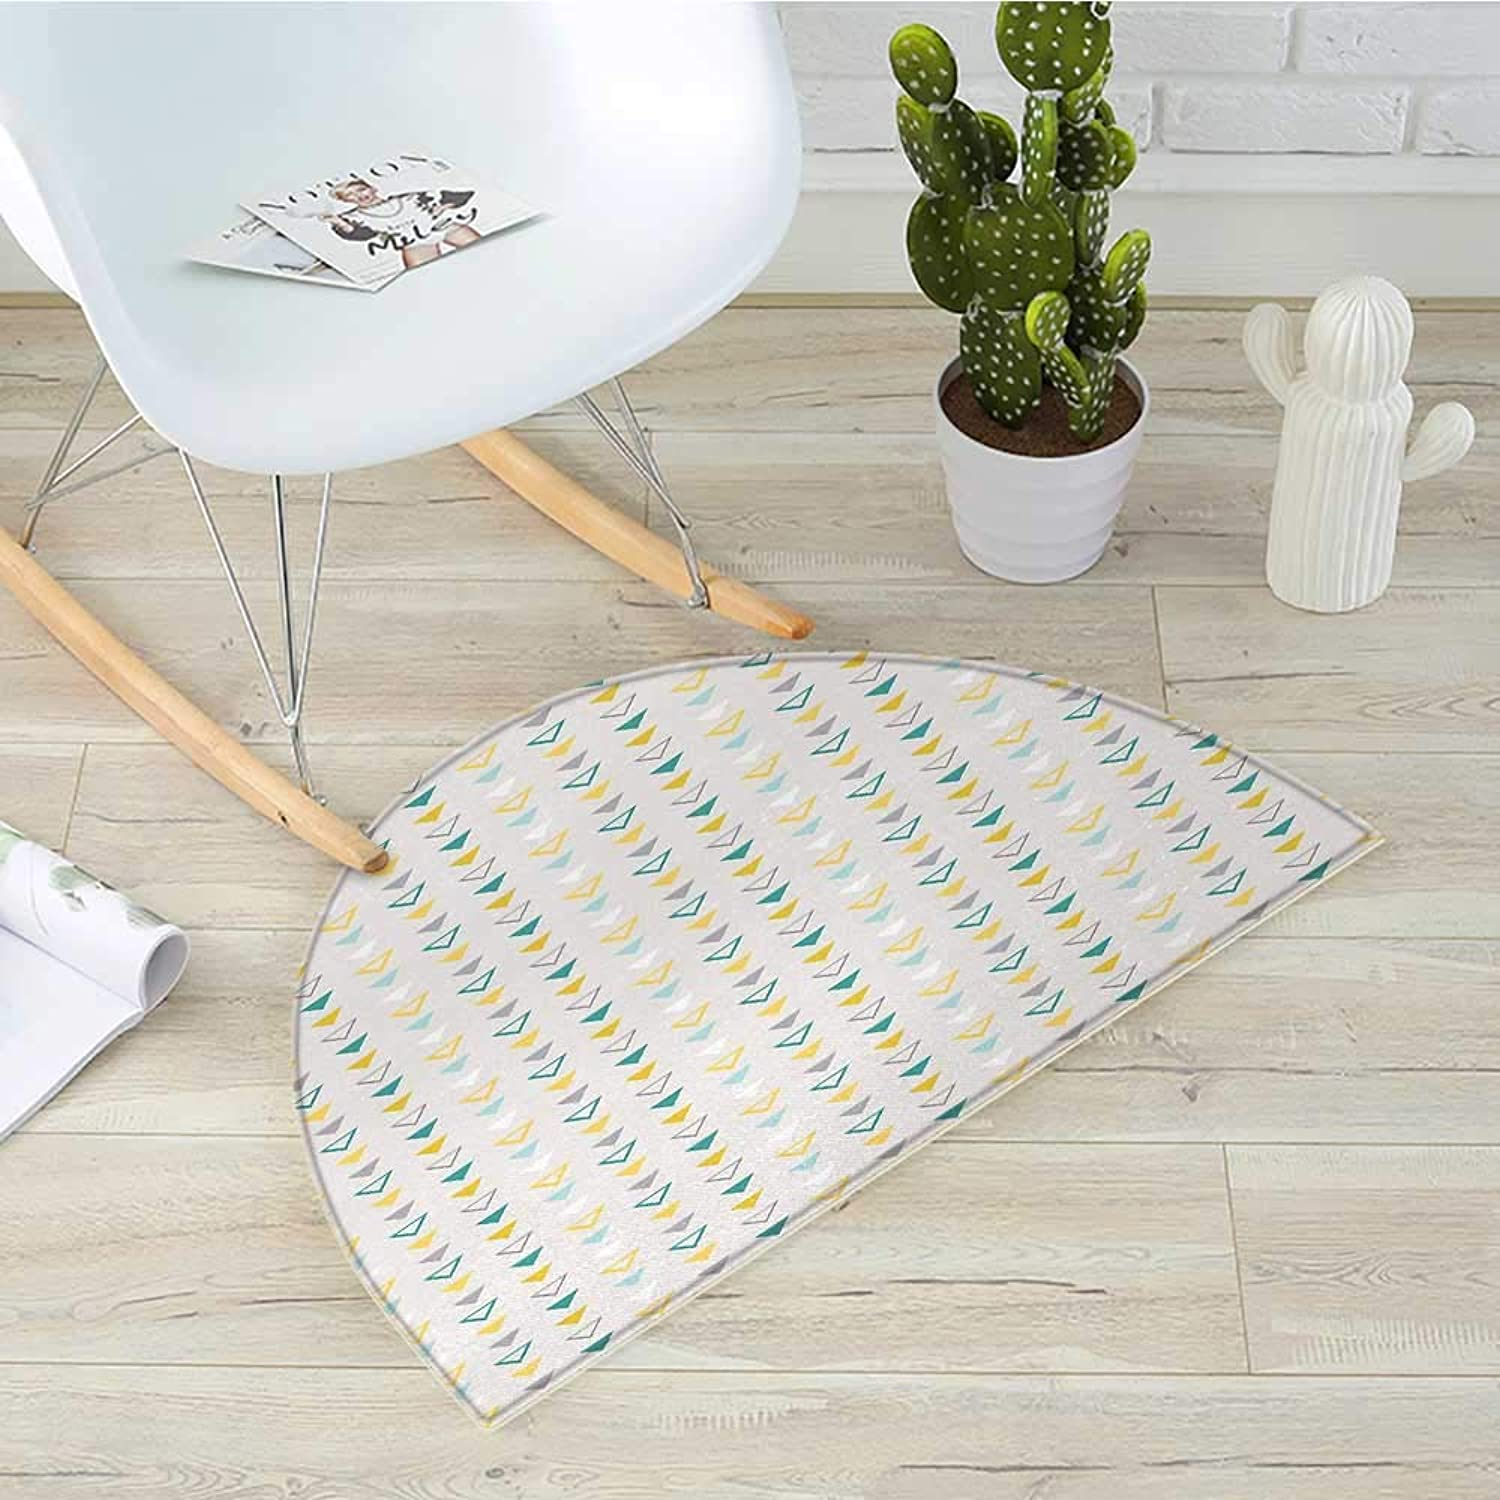 Geometric Half Round Door mats Grunge Geometrical Shapes with Vintage Inspirations Traditional Pattern Classic Bathroom Mat H 39.3  xD 59  Multicolor